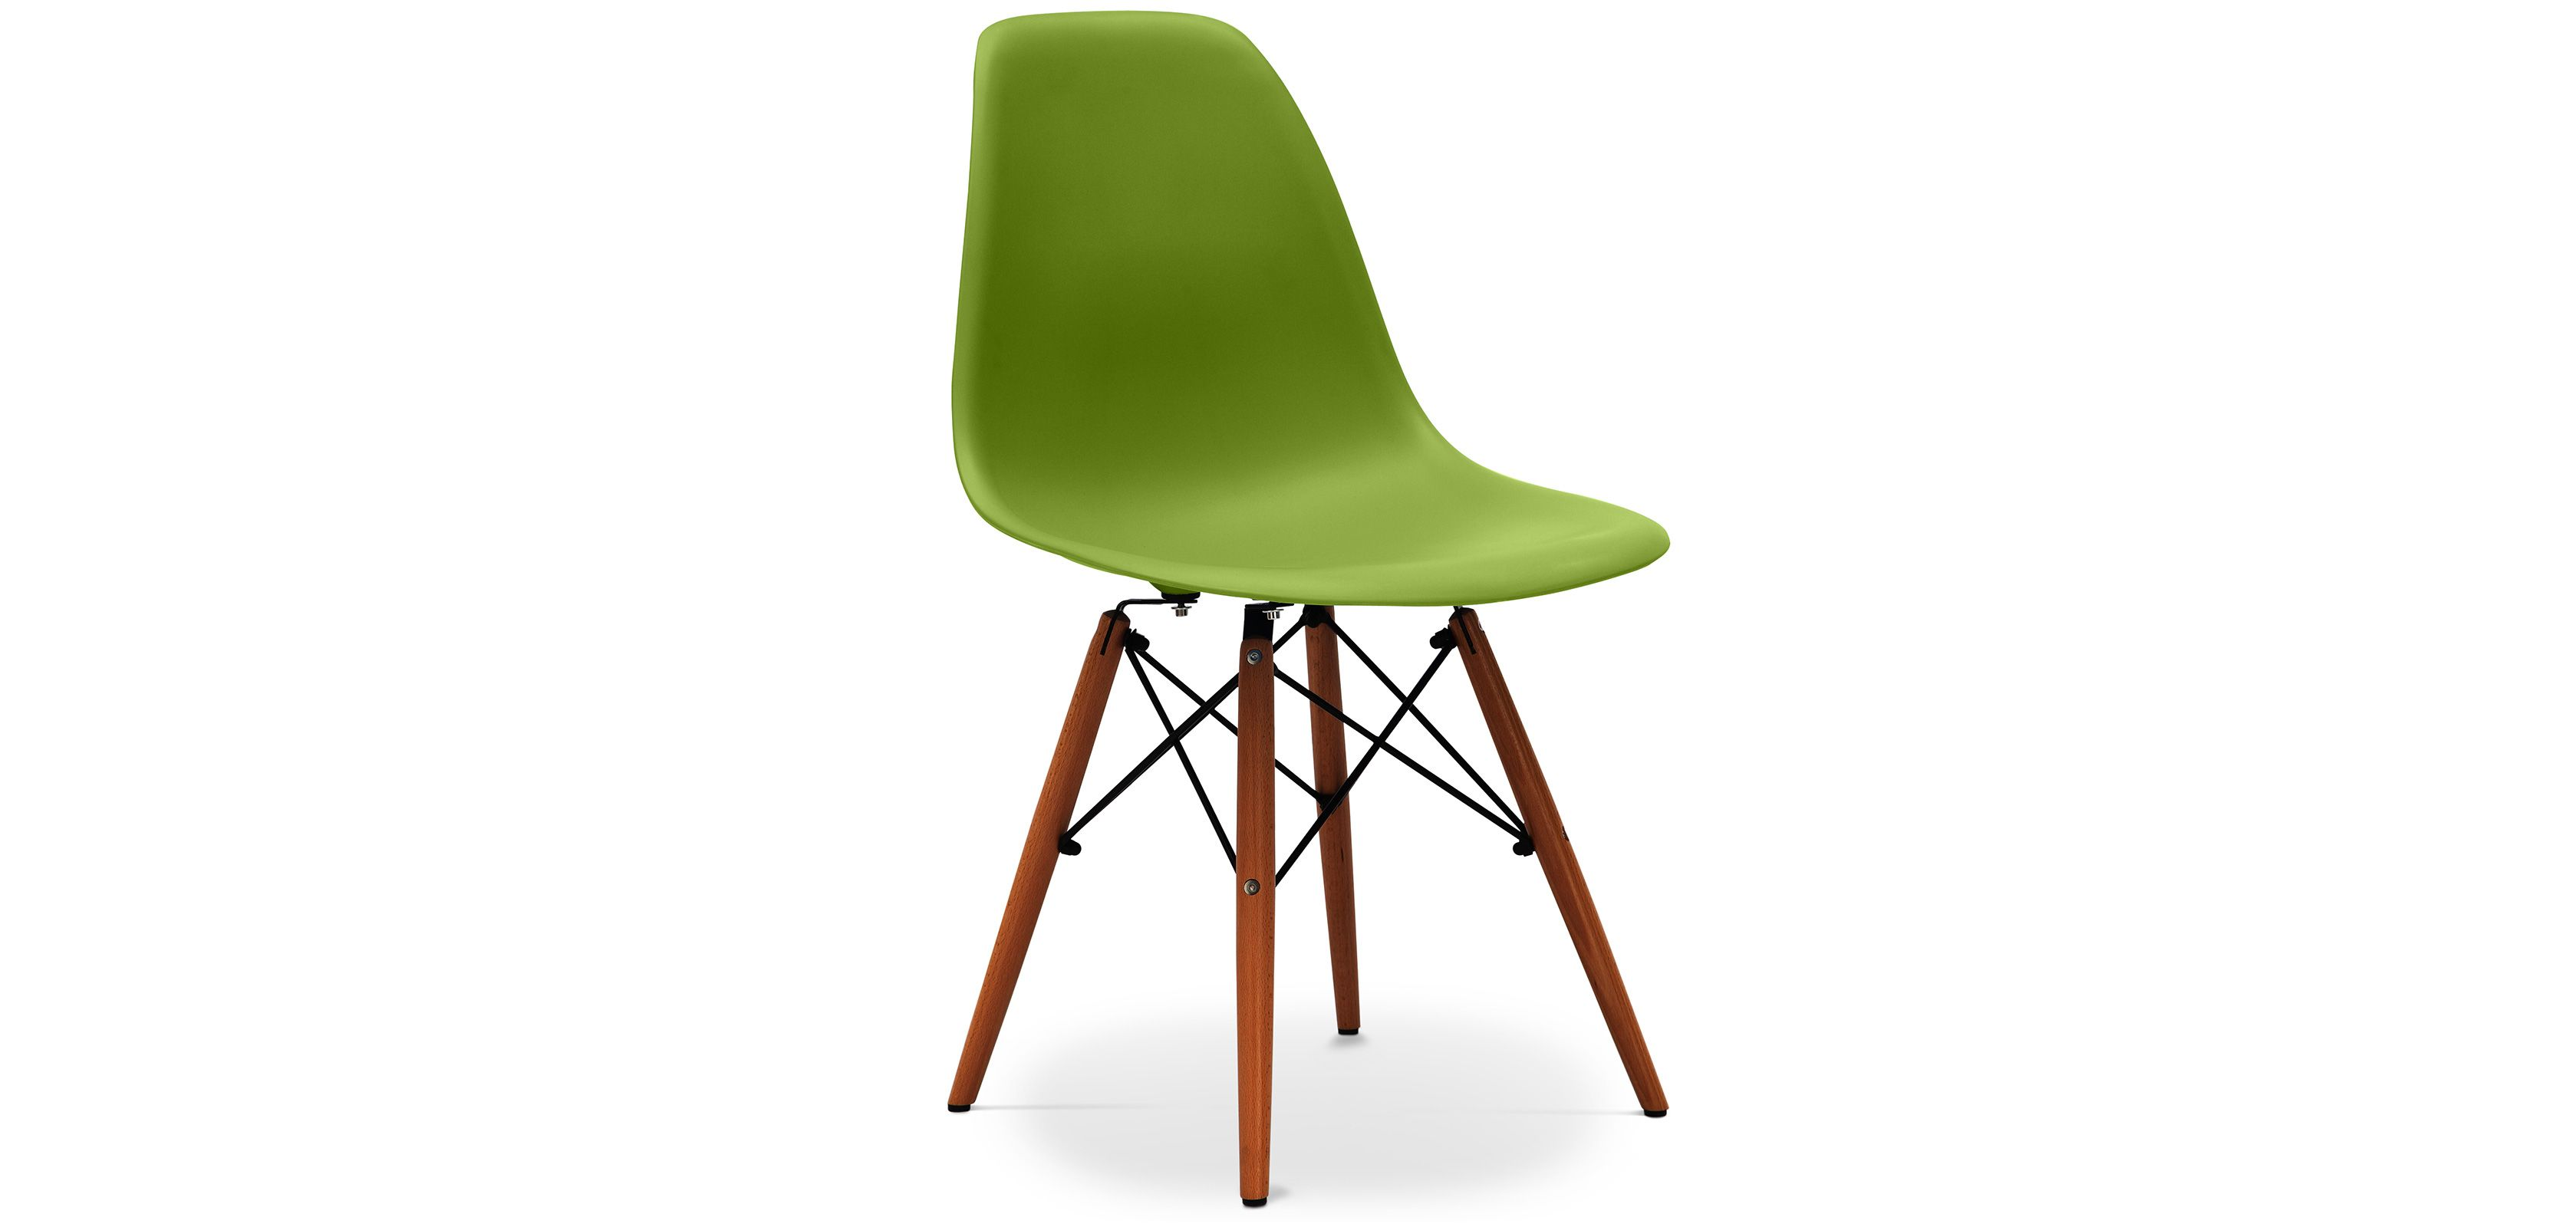 Chaise Dsw Pietement Fonce Charles Eames Style Polypropylene Matt Dsw Chair Chair Eames Chair